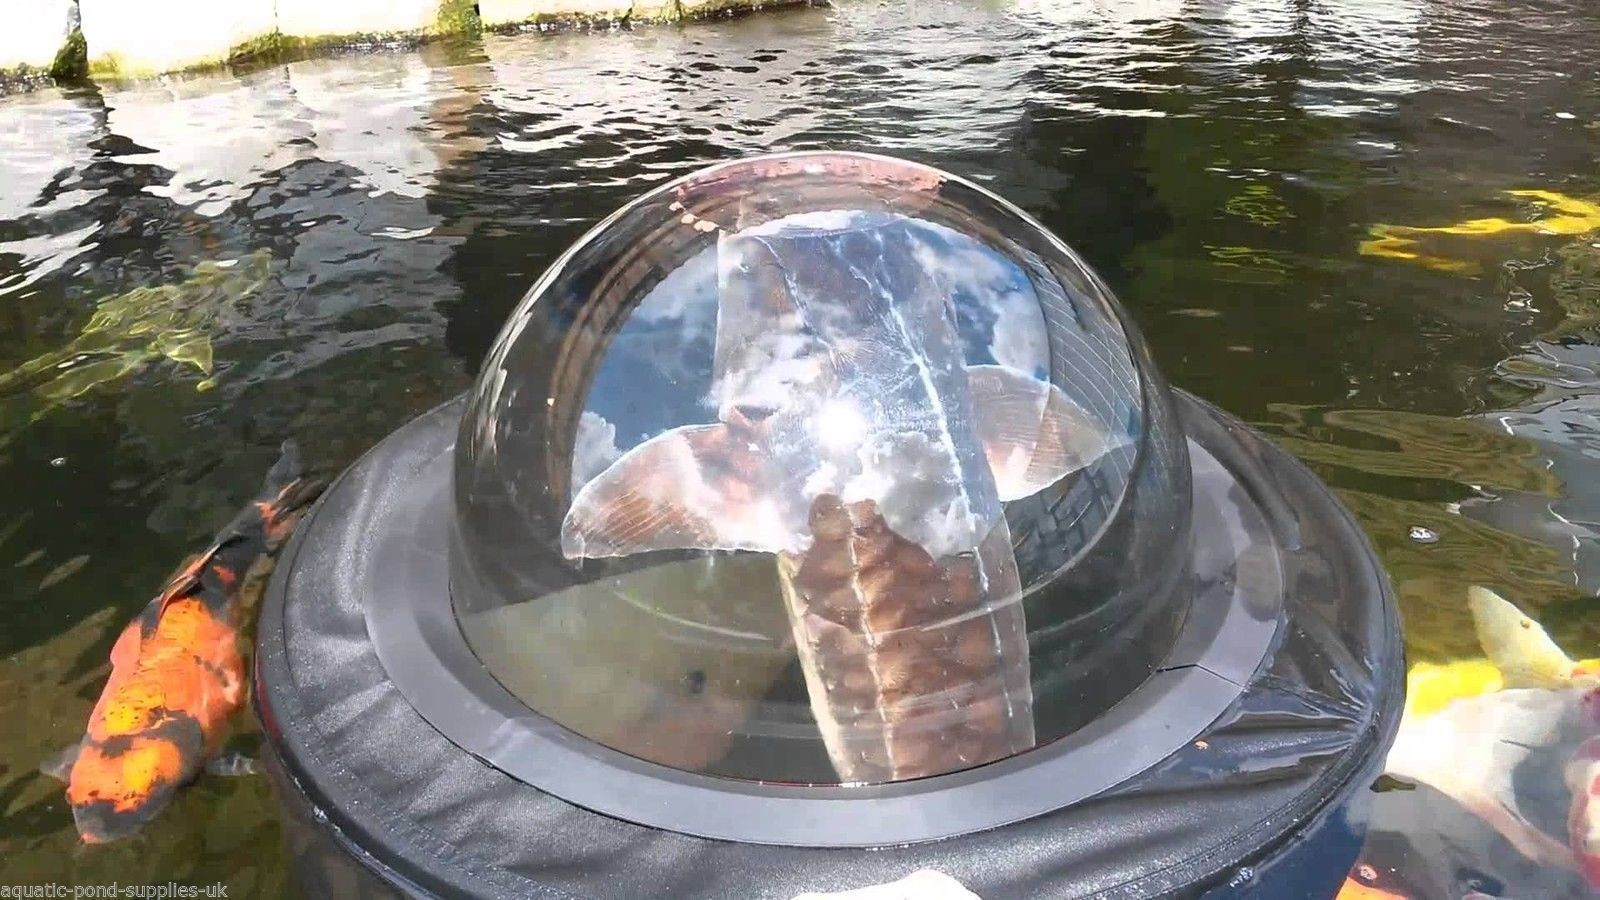 Velda floating fish sphere dome garden pond water koi for Koi pond fish